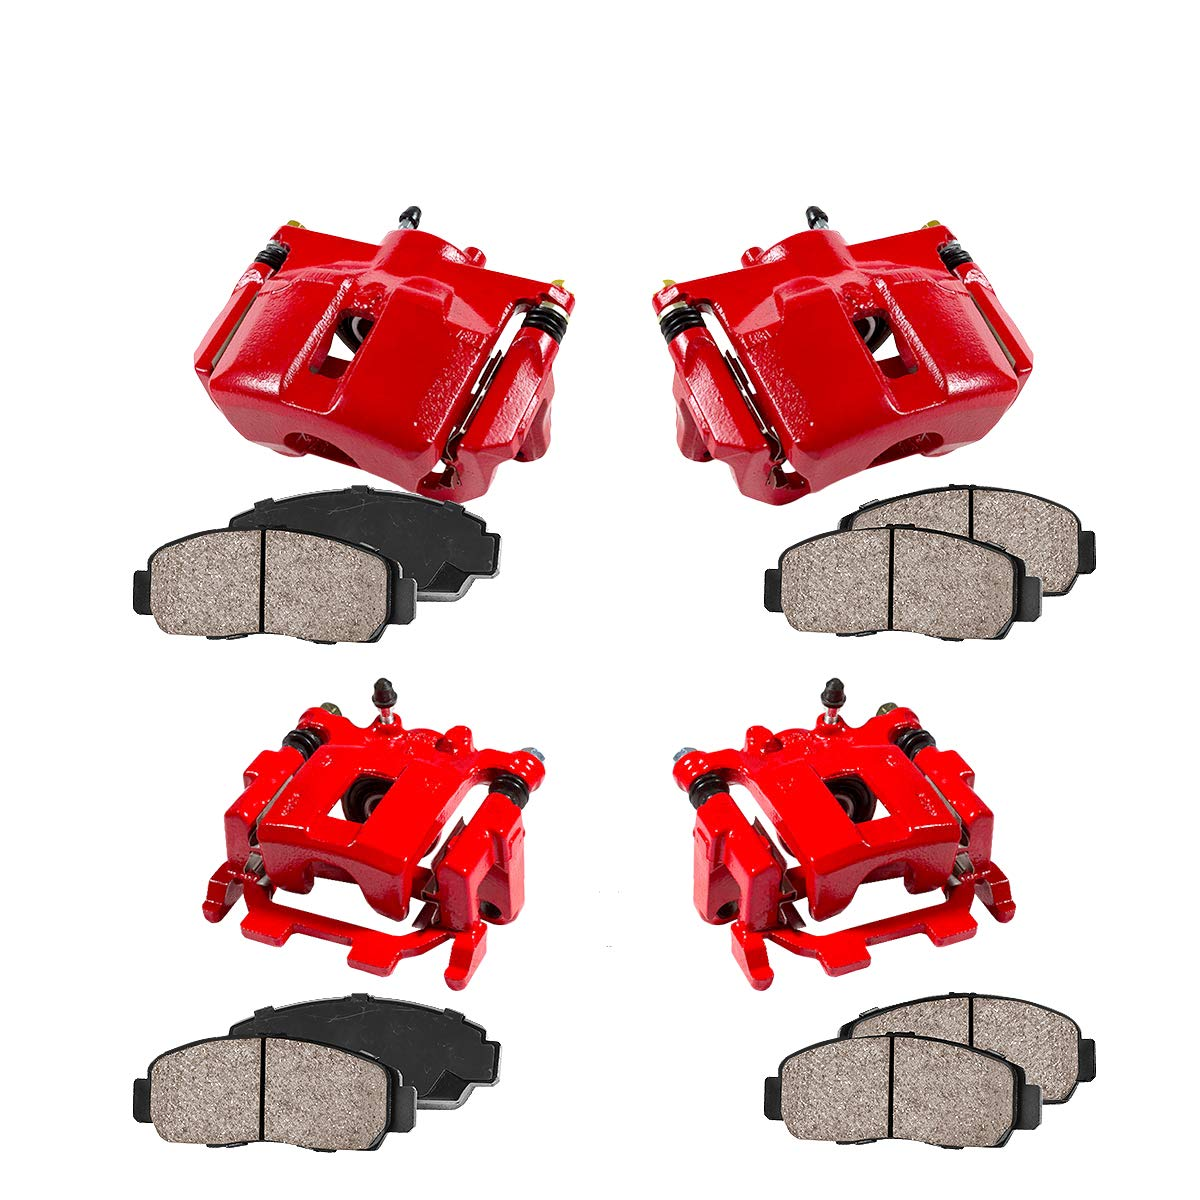 CCK01457 FRONT + REAR [ 4 ] Performance Grade Loaded Powder Coated Red Calipers + Ceramic Brake Pads Kit Callahan Brake Parts